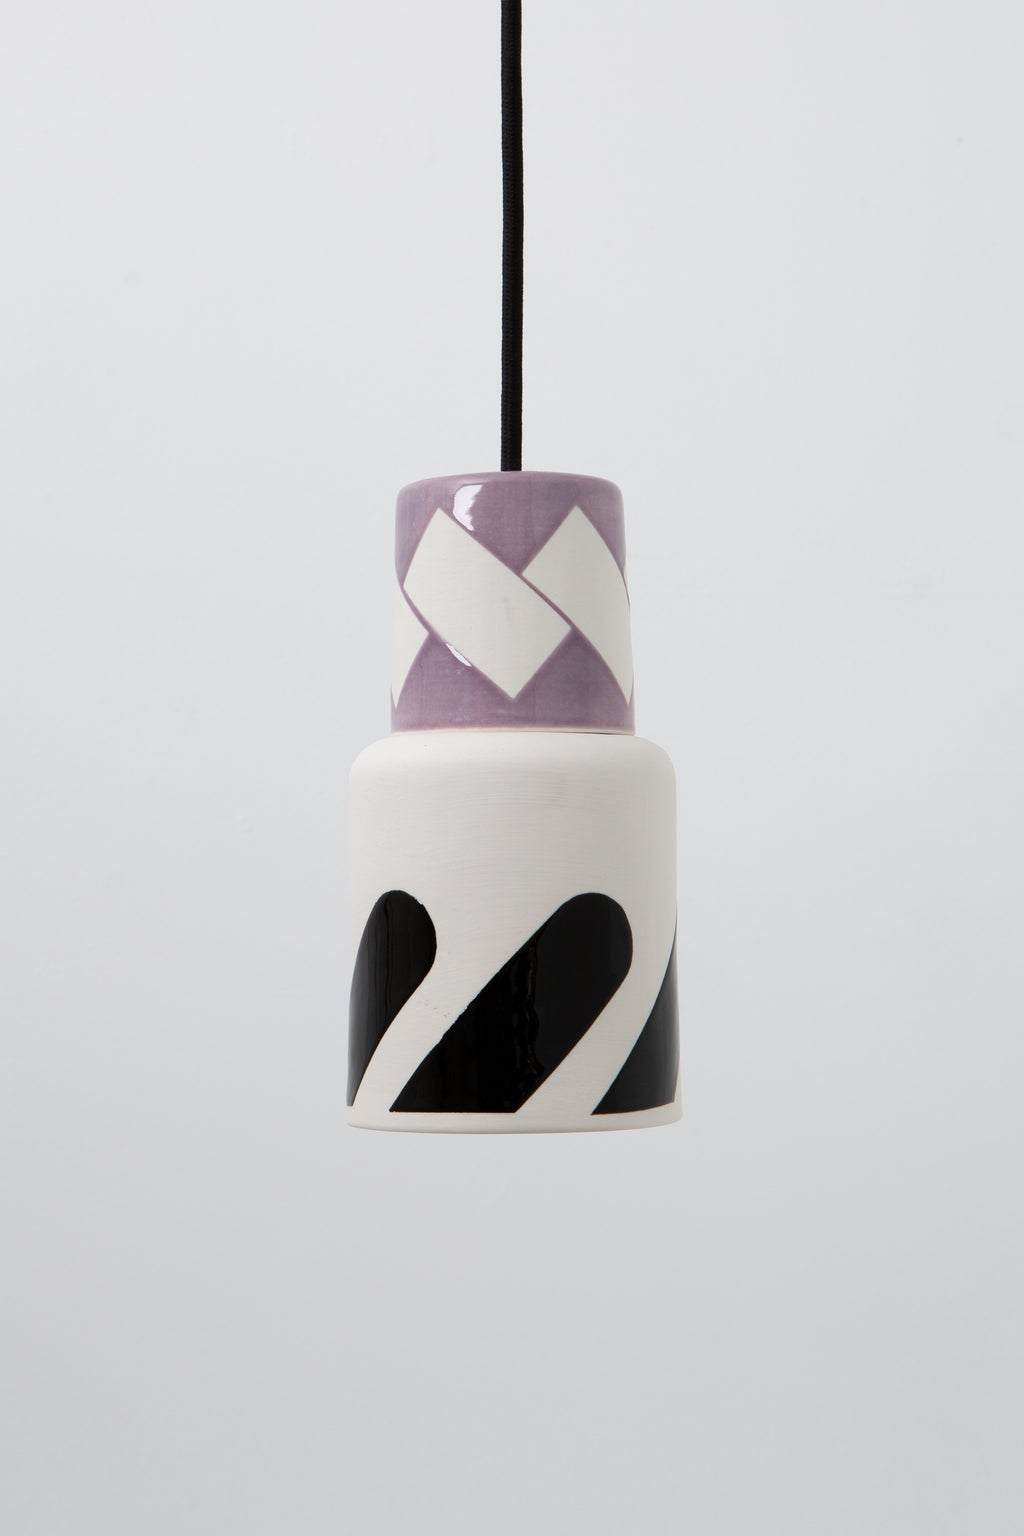 Pendant light, porcelain lamp, lilac, black graphic